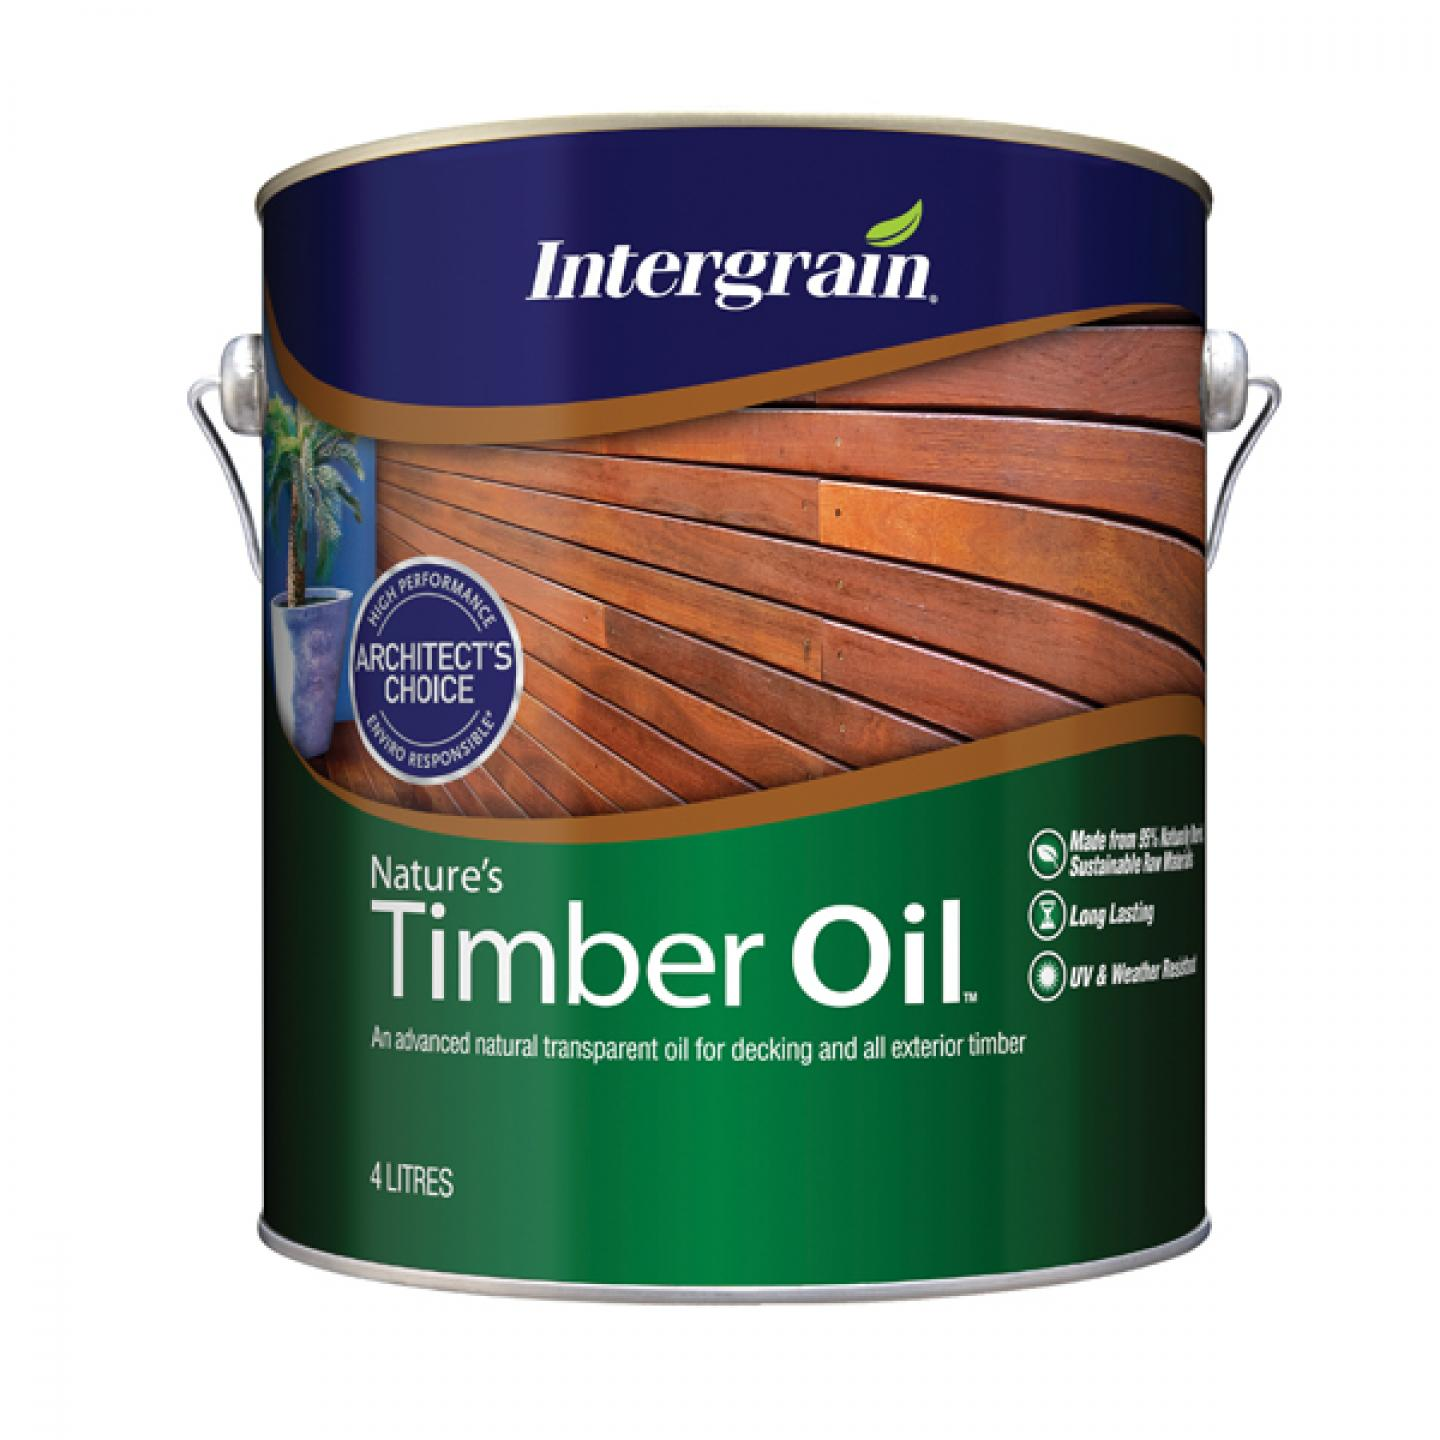 Natural semi transparent penetrating oil for timber decking and garden furniture contains tung oil a natural wood oil that penetrates deep into timber